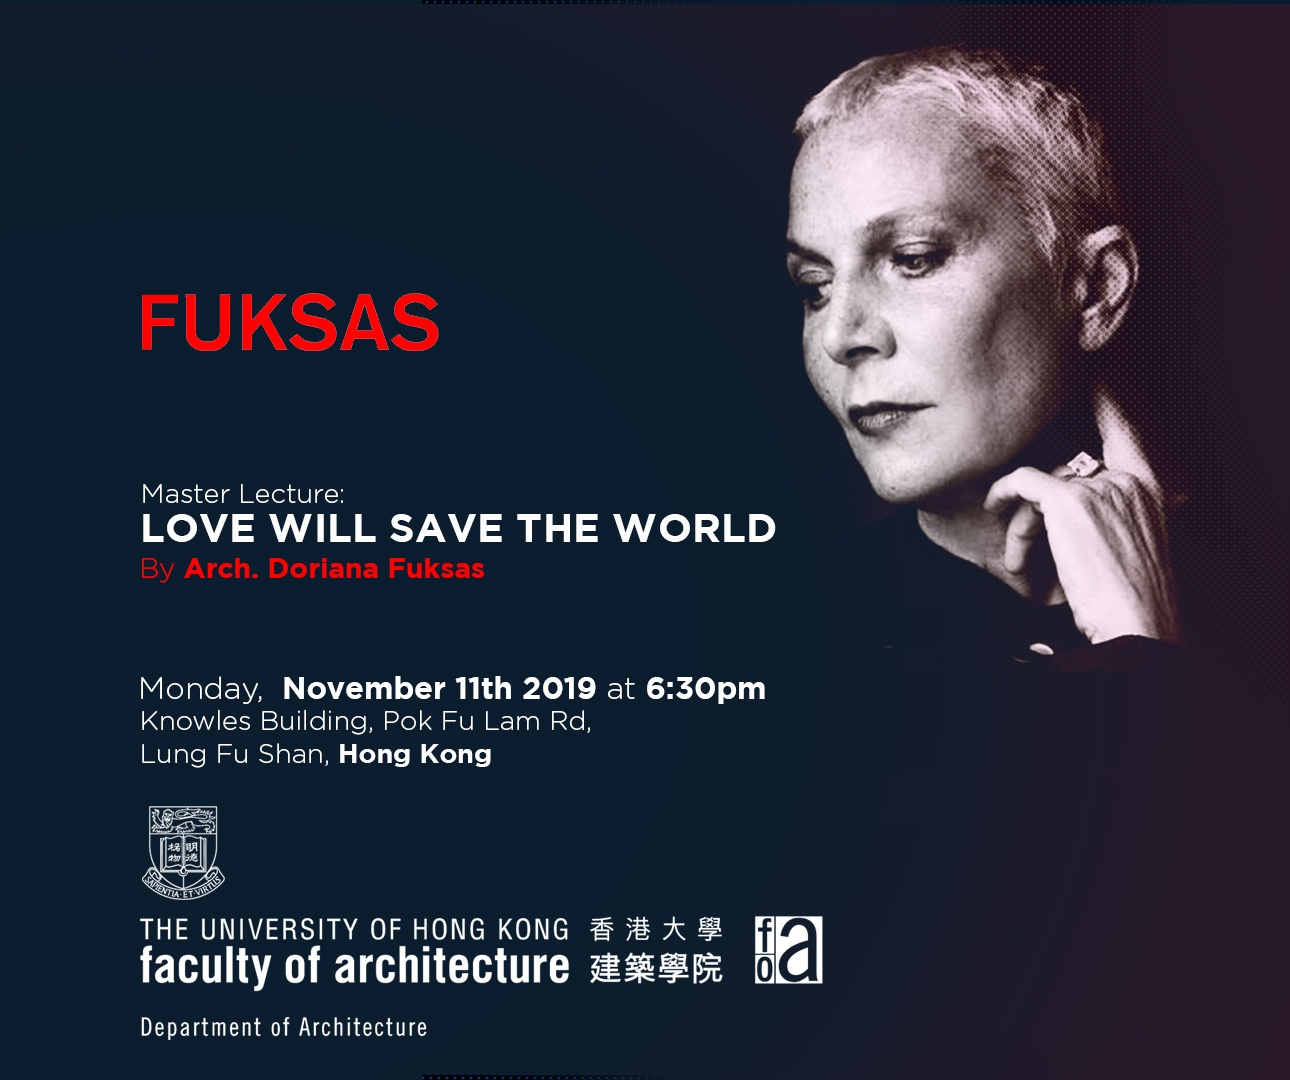 Master Lecture: Love Will Save The World At The University Of Hong Kong